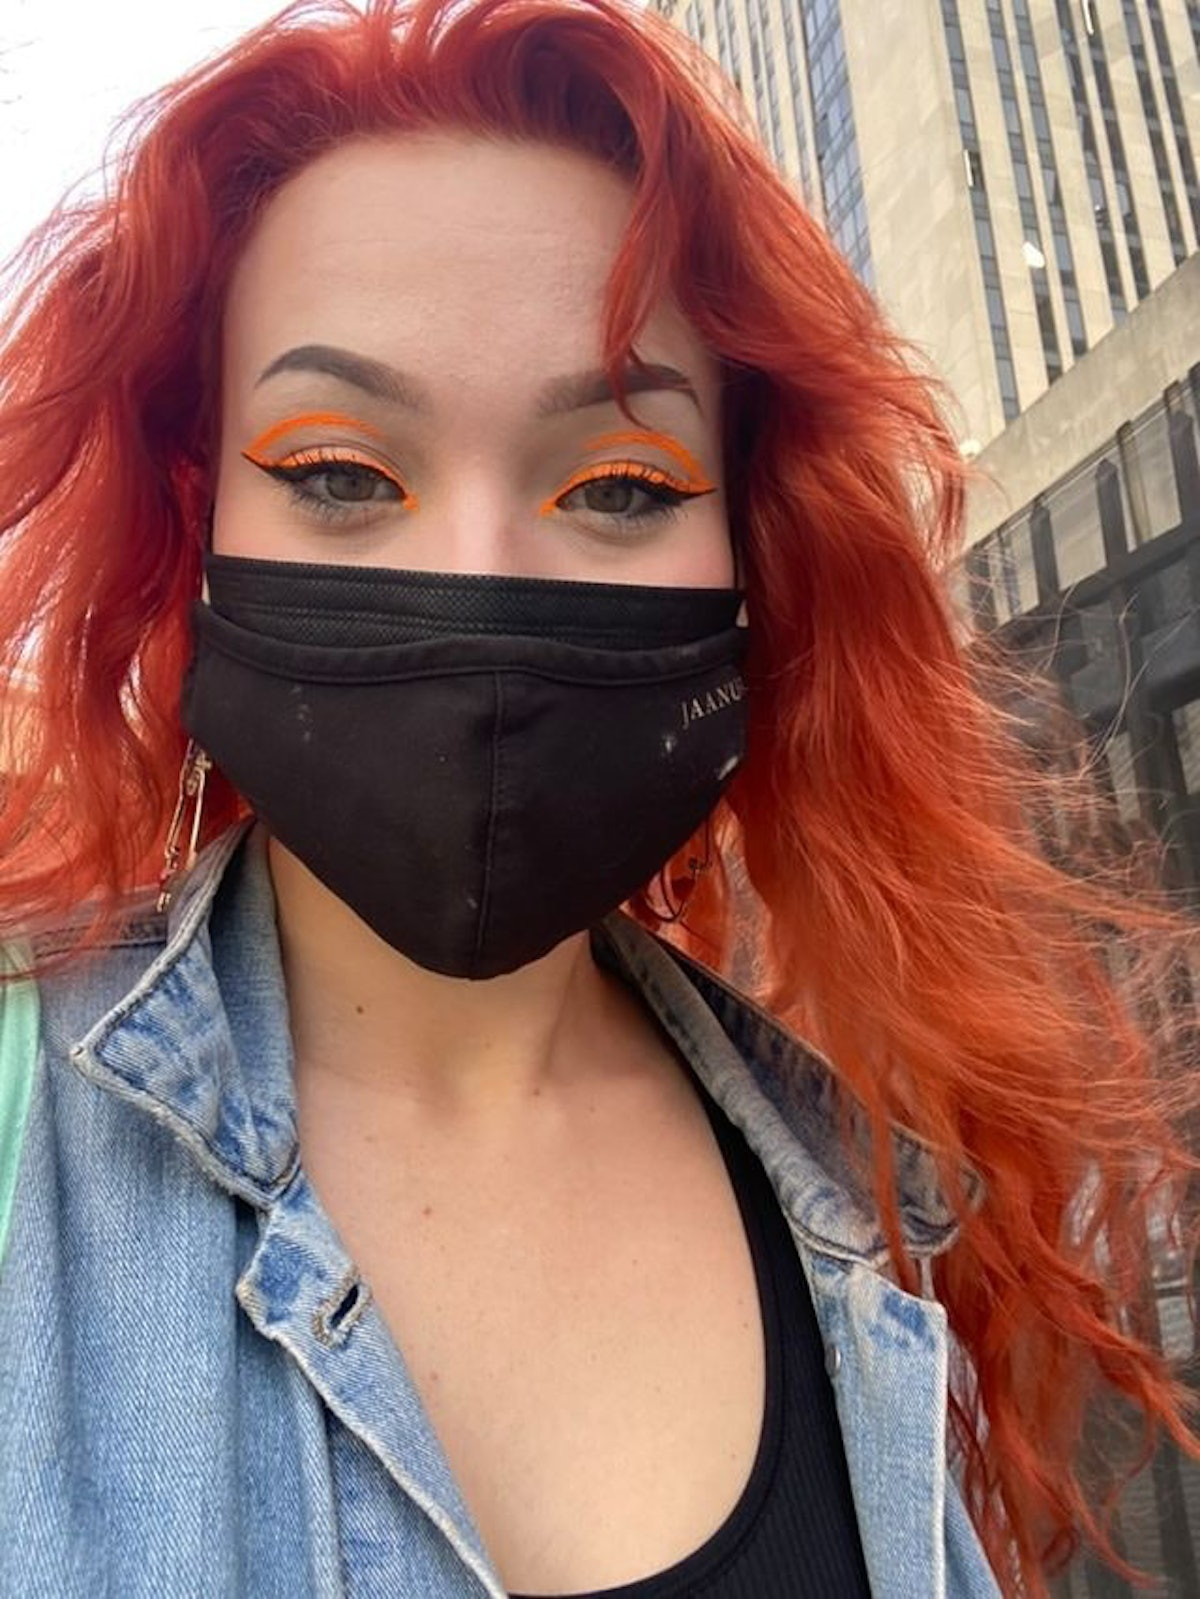 Hayley Adams in a neon orange, graphic eyeliner design using skills she honed for her post-pandemic ...